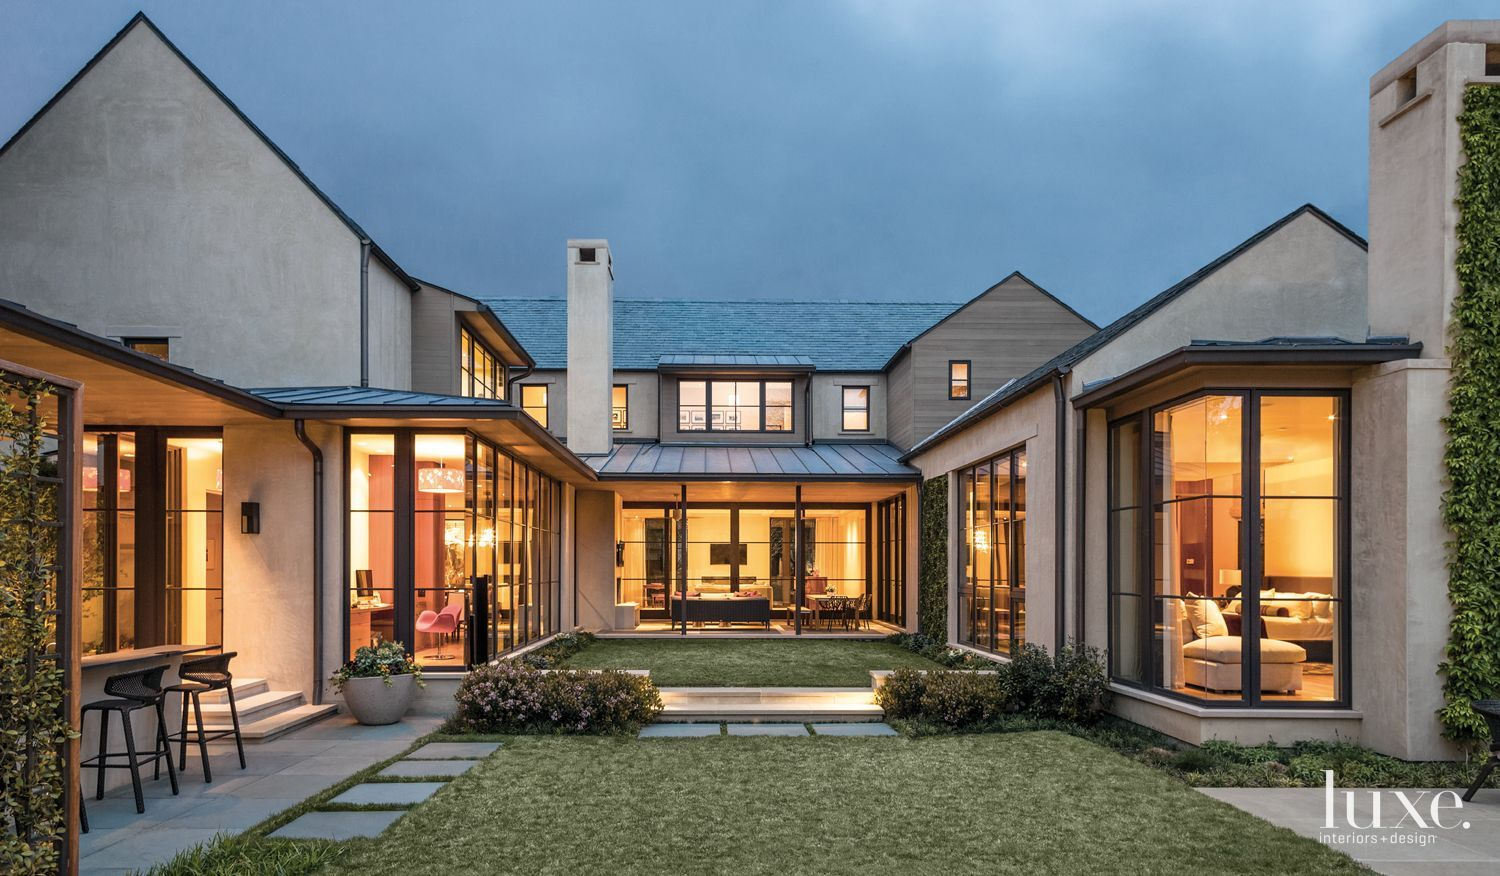 A Modern Dallas Home with a Courtyard-Style Design in 2019 | Design on french colonial house plans, mexican culture houses, german colonial house plans, mexican colonial design, mexican villa house plans, mexican colonial home, white colonial house plans, mexican beach house plans, mexican style home design, mexican colonial furniture, colonial homes house plans, mexican ranch house plans, georgian colonial house plans, mexican house plans with courtyard, mexican hacienda homes plans, mexican hacienda floor plans, colonial floor plans, dutch colonial house plans, mexican small house plans, mexican style houses,